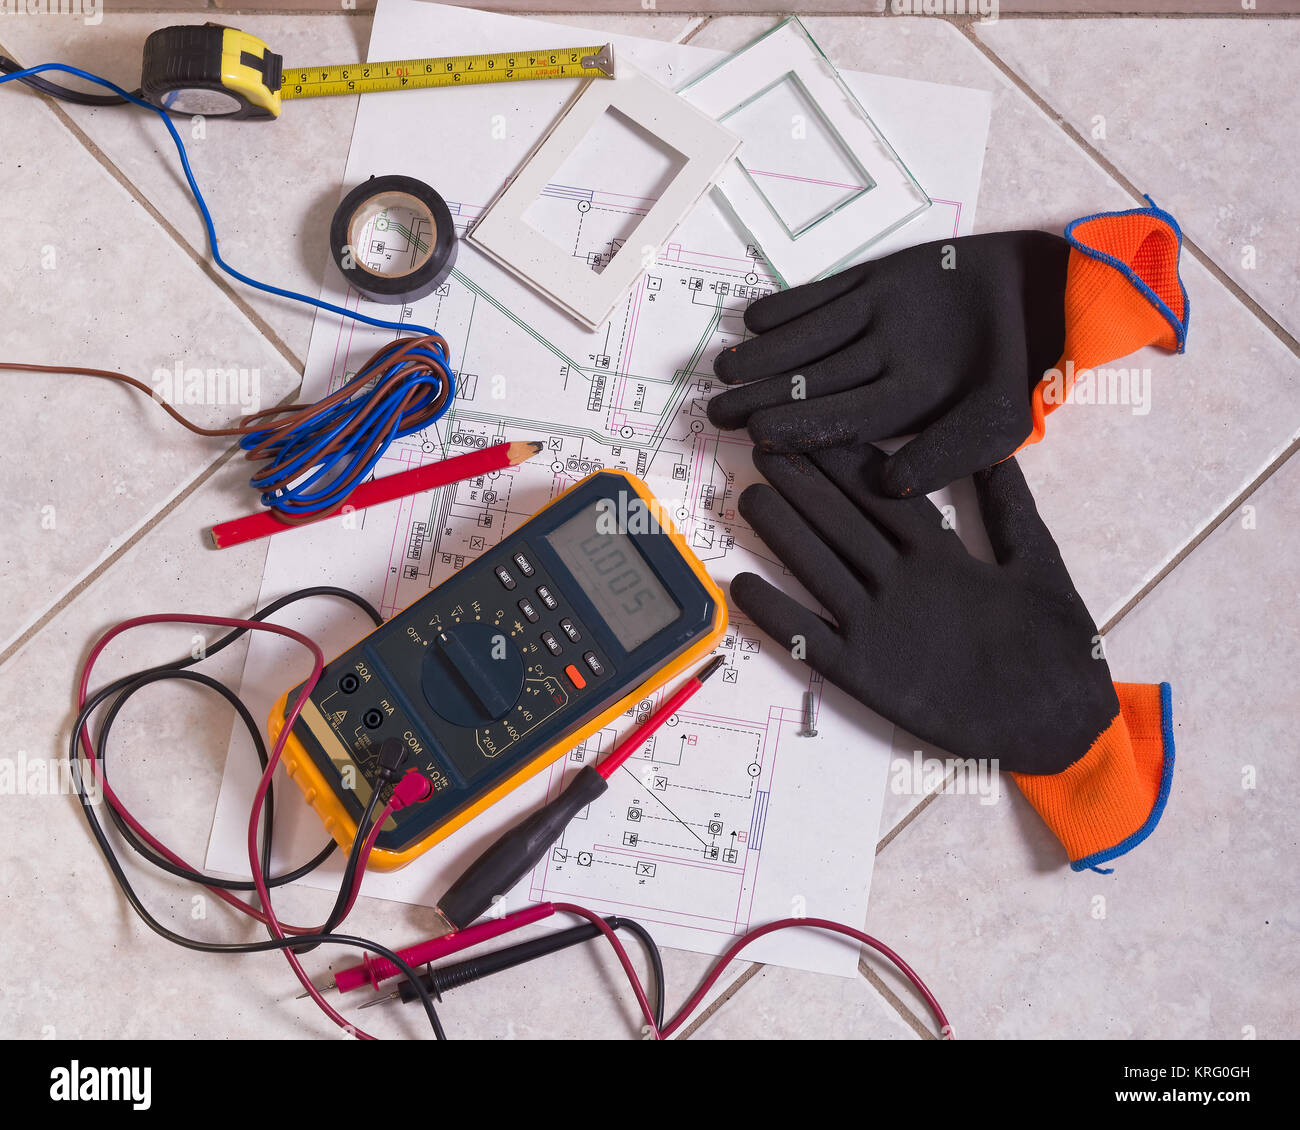 Domestic Electrical Installation Stock Photos & Domestic Electrical ...